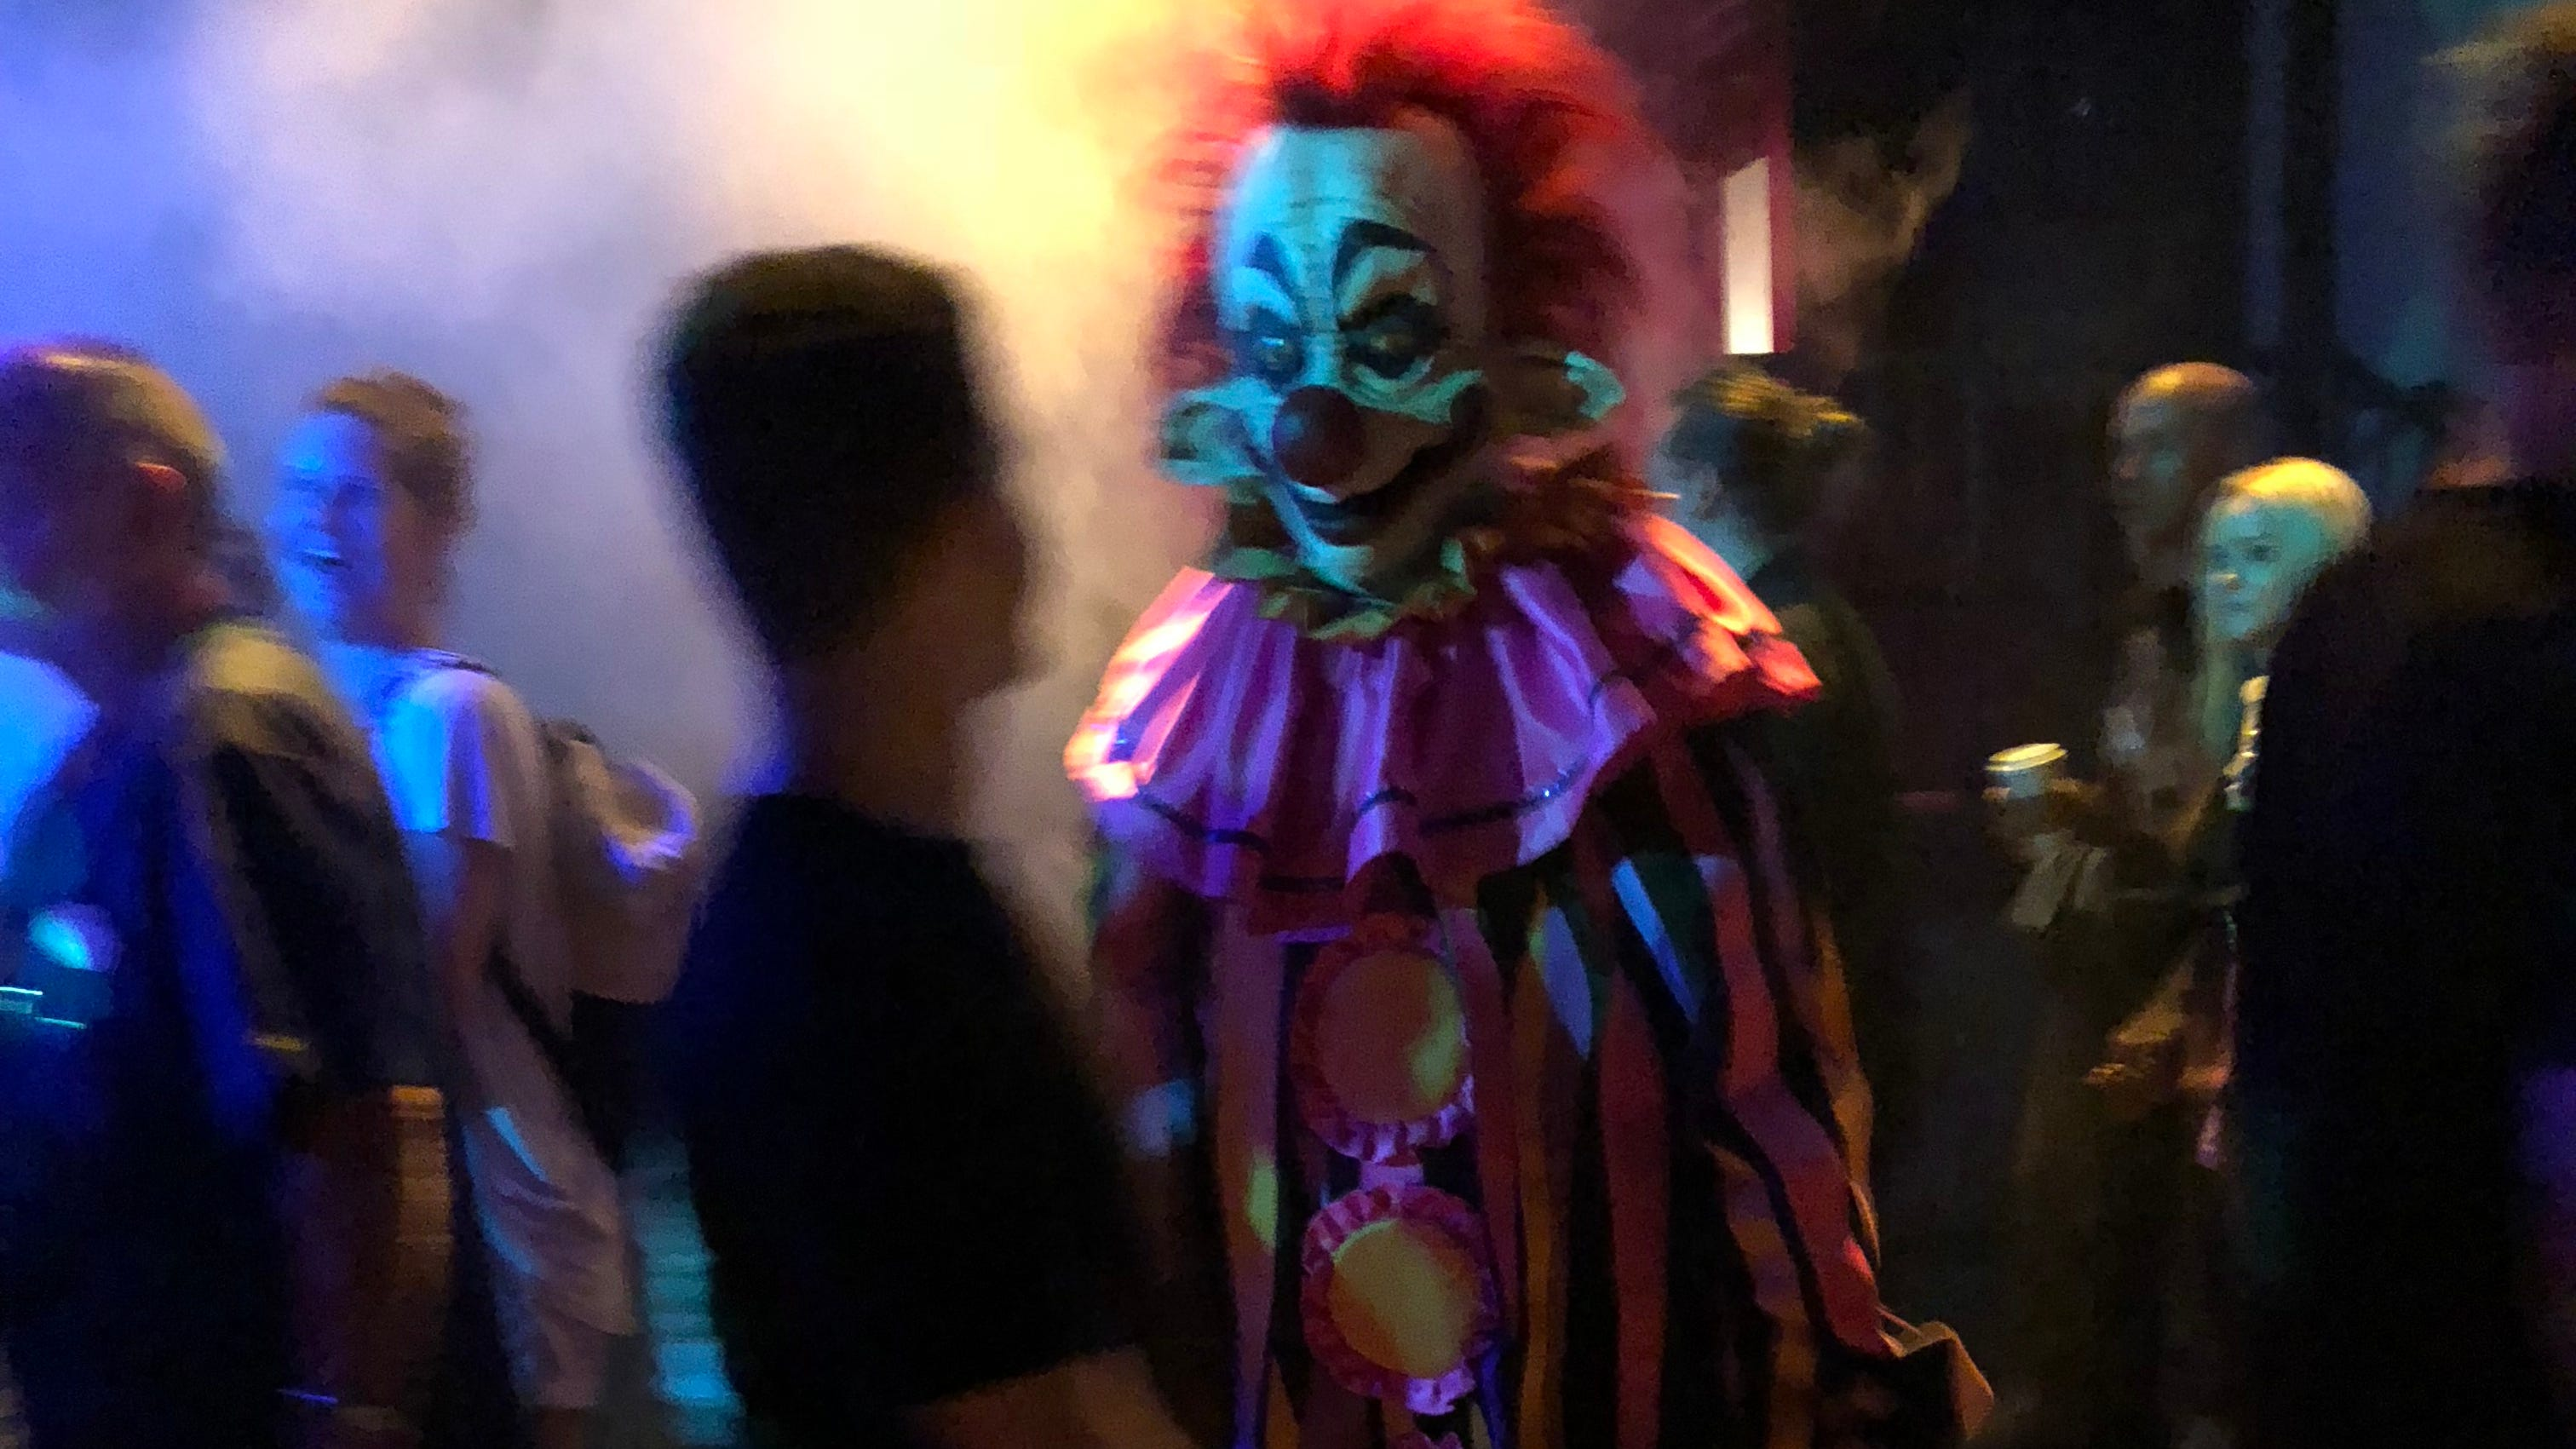 Halloween Horror Nights 2018 dials it up to Eleven with 'Stranger Things' and 1980s theme